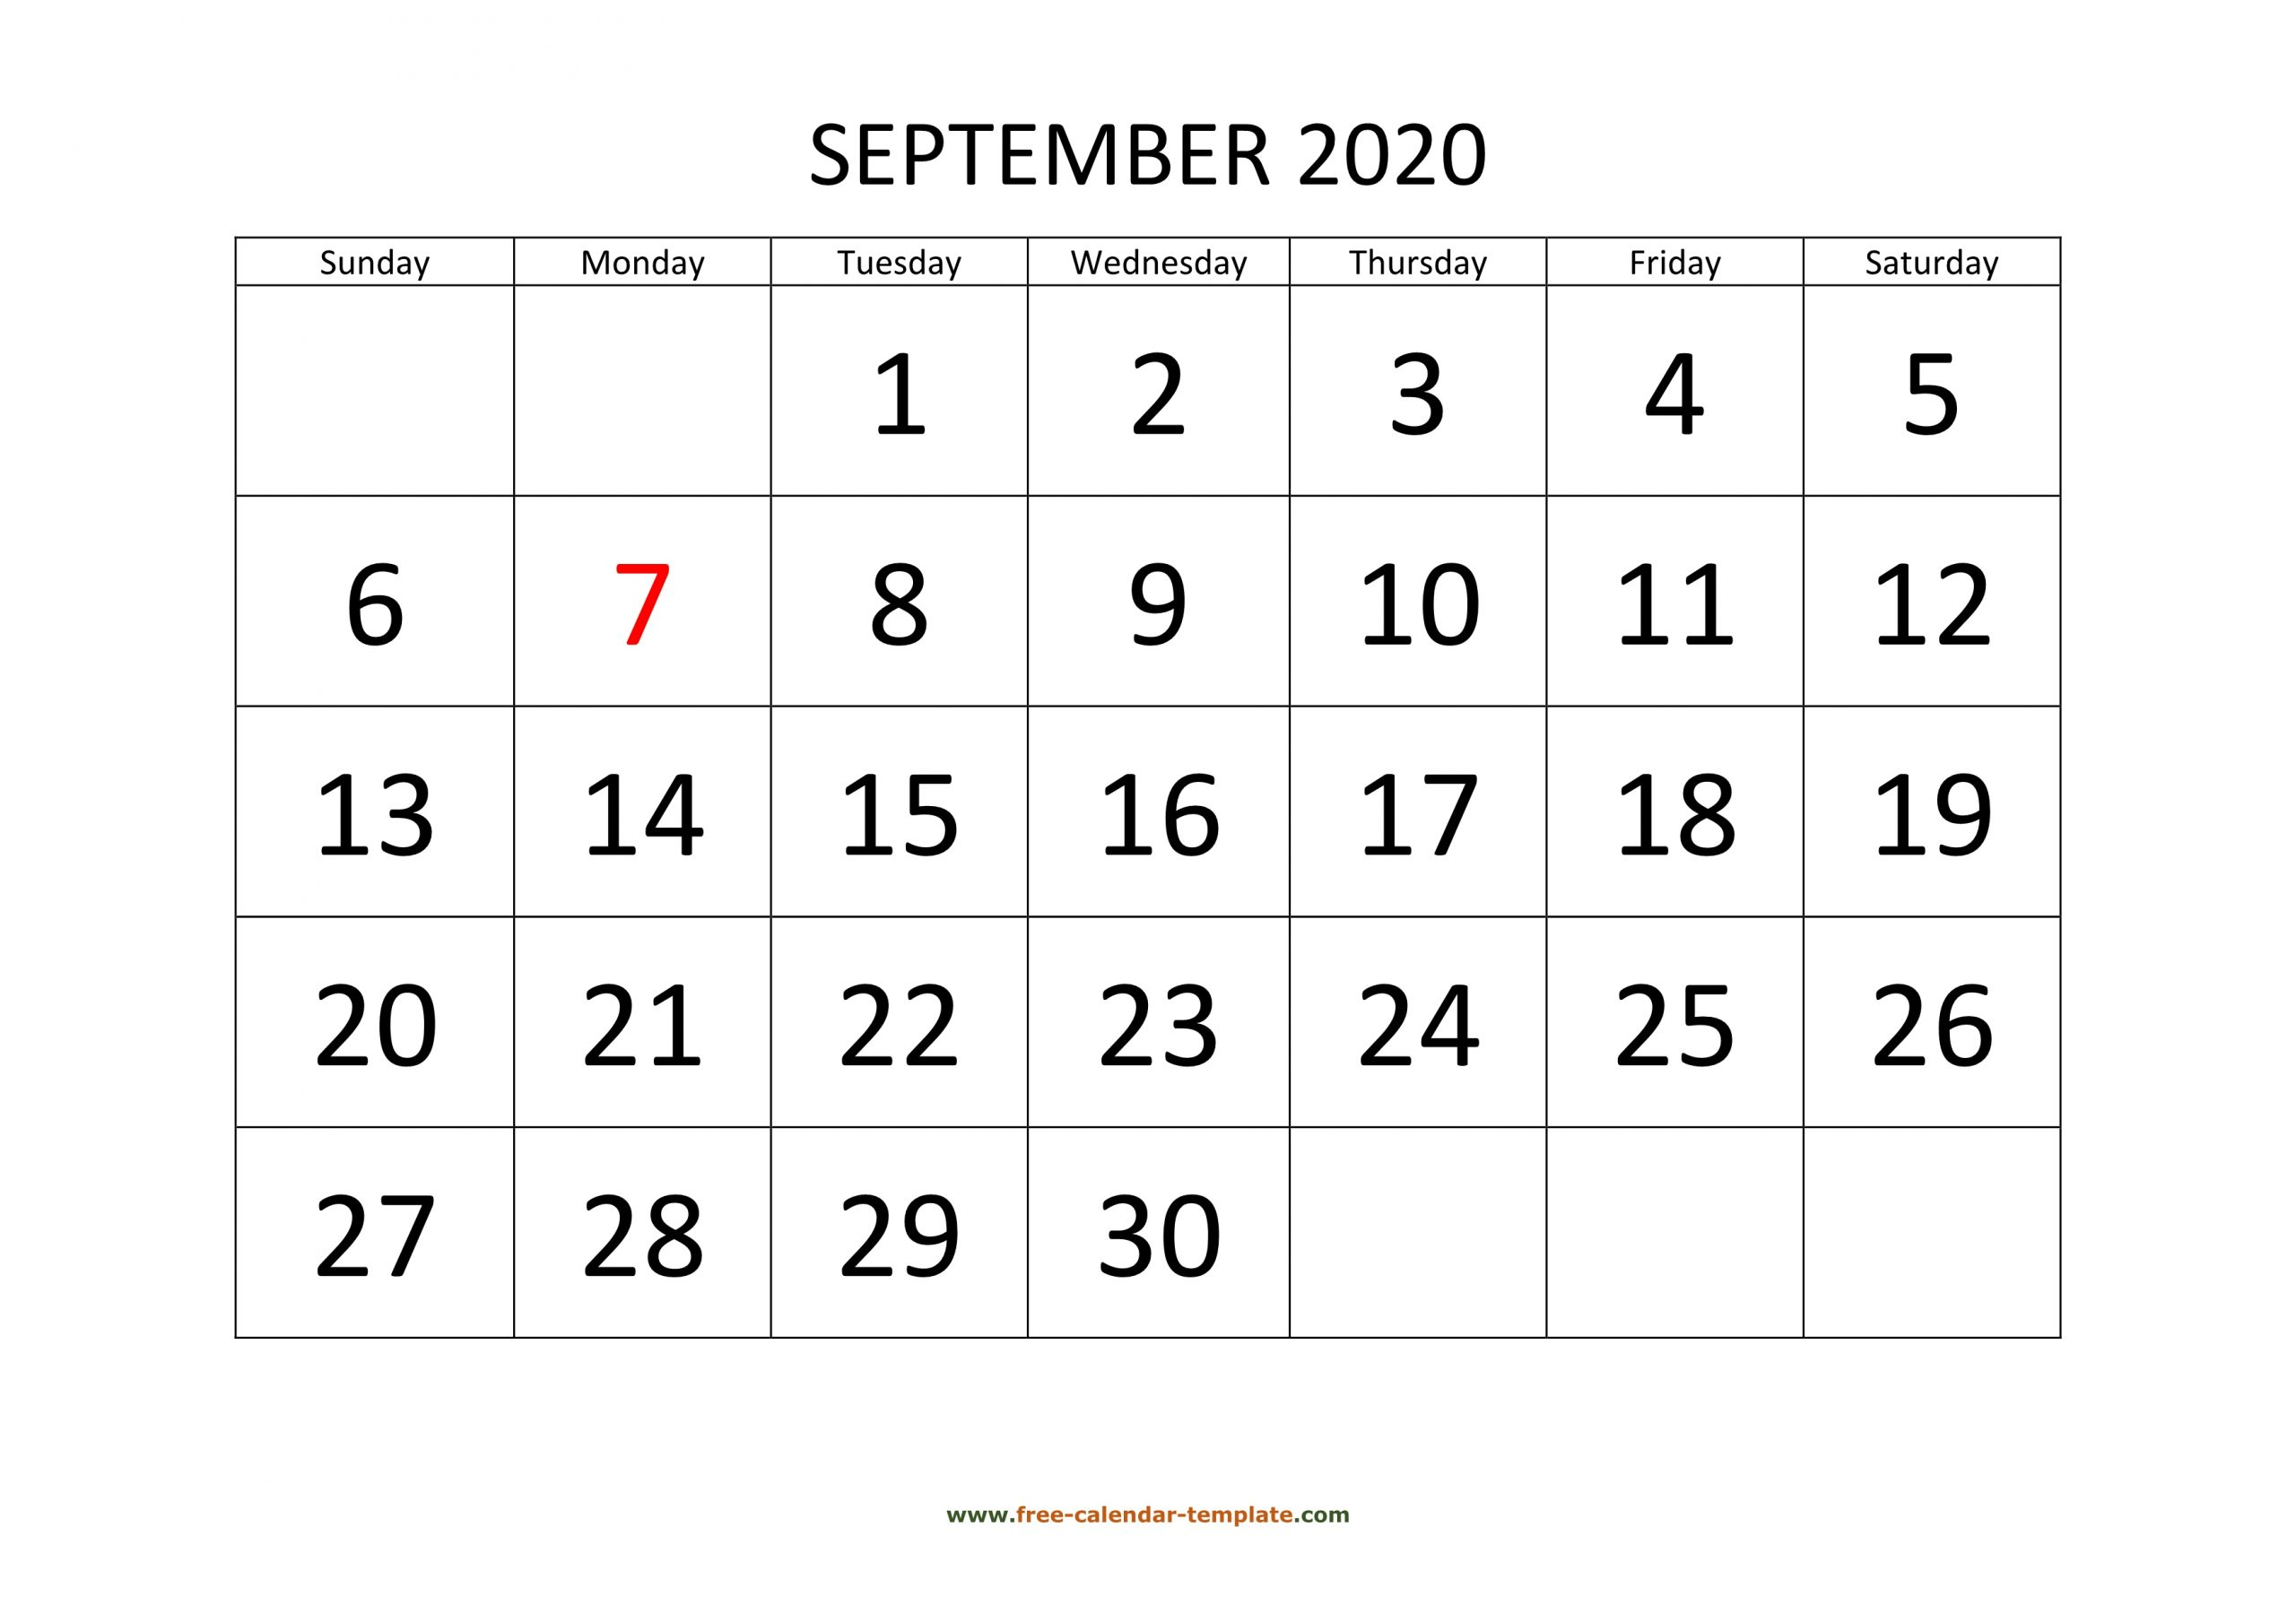 September 2020 Calendar Designed With Large Font (Horizontal